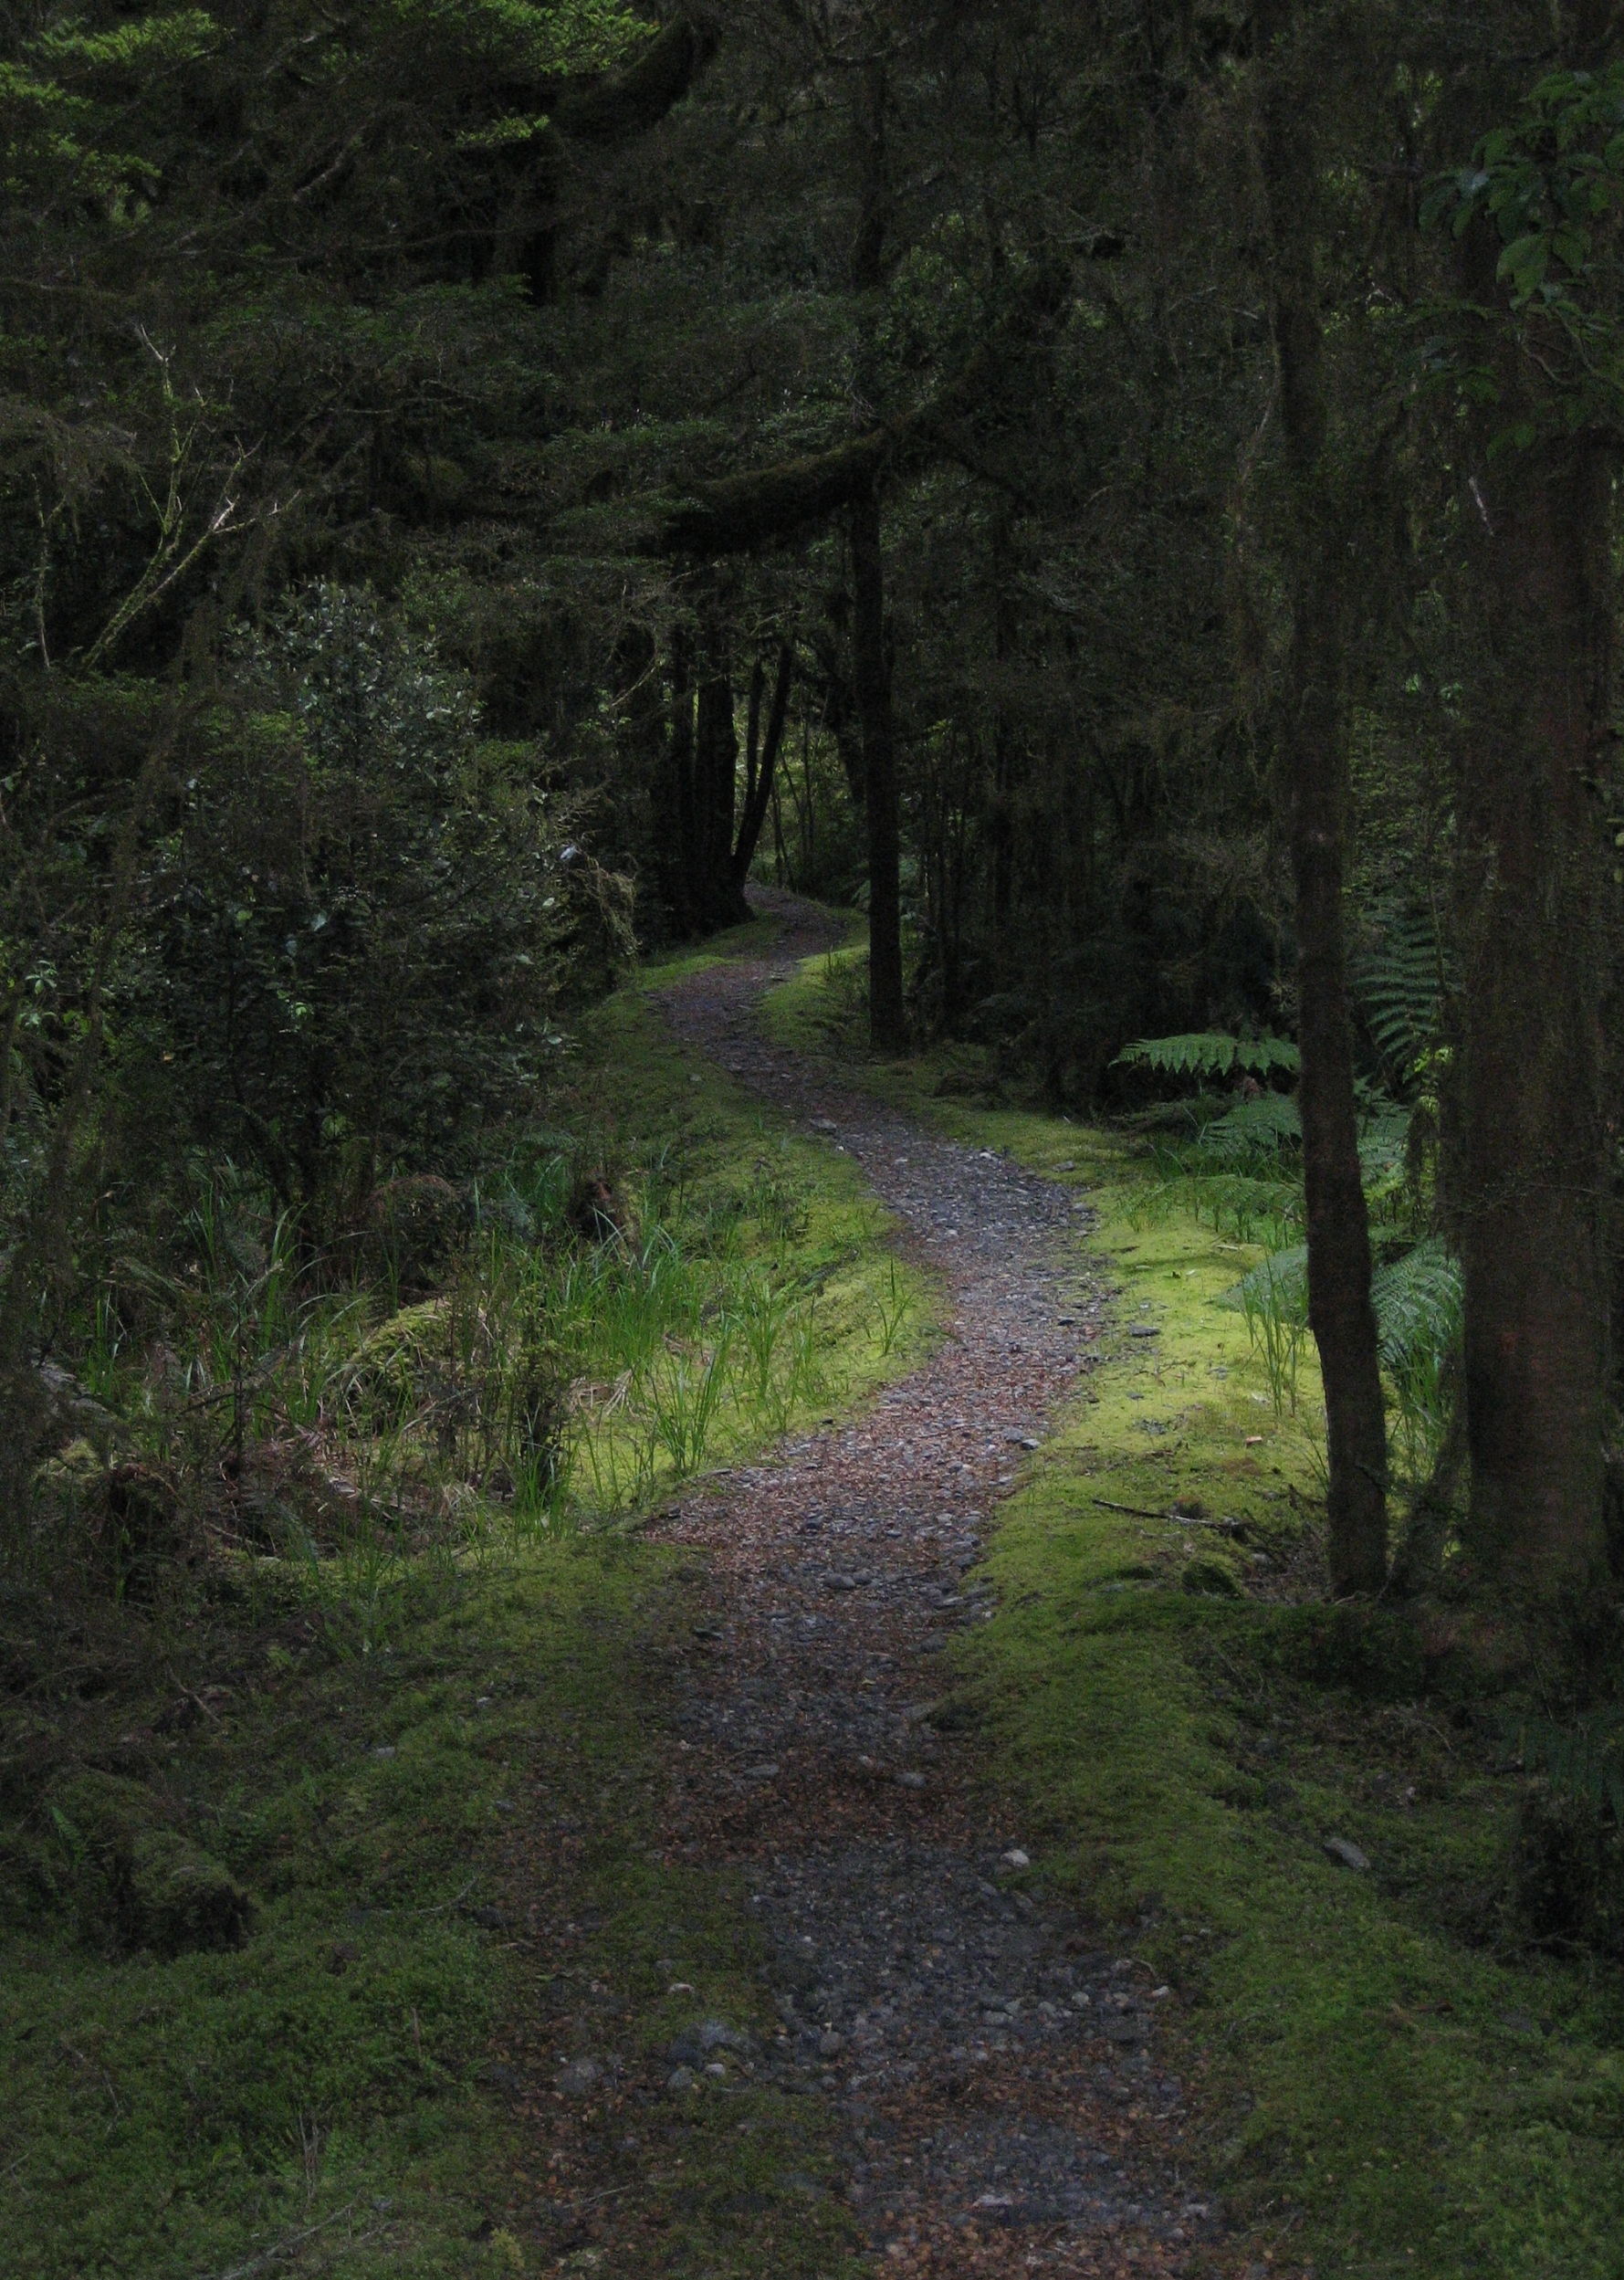 And see this path? This is what writing often feels like to me. A curvy trail through thick woods. Uncertainty at every step. And yet, you keep moving forward.